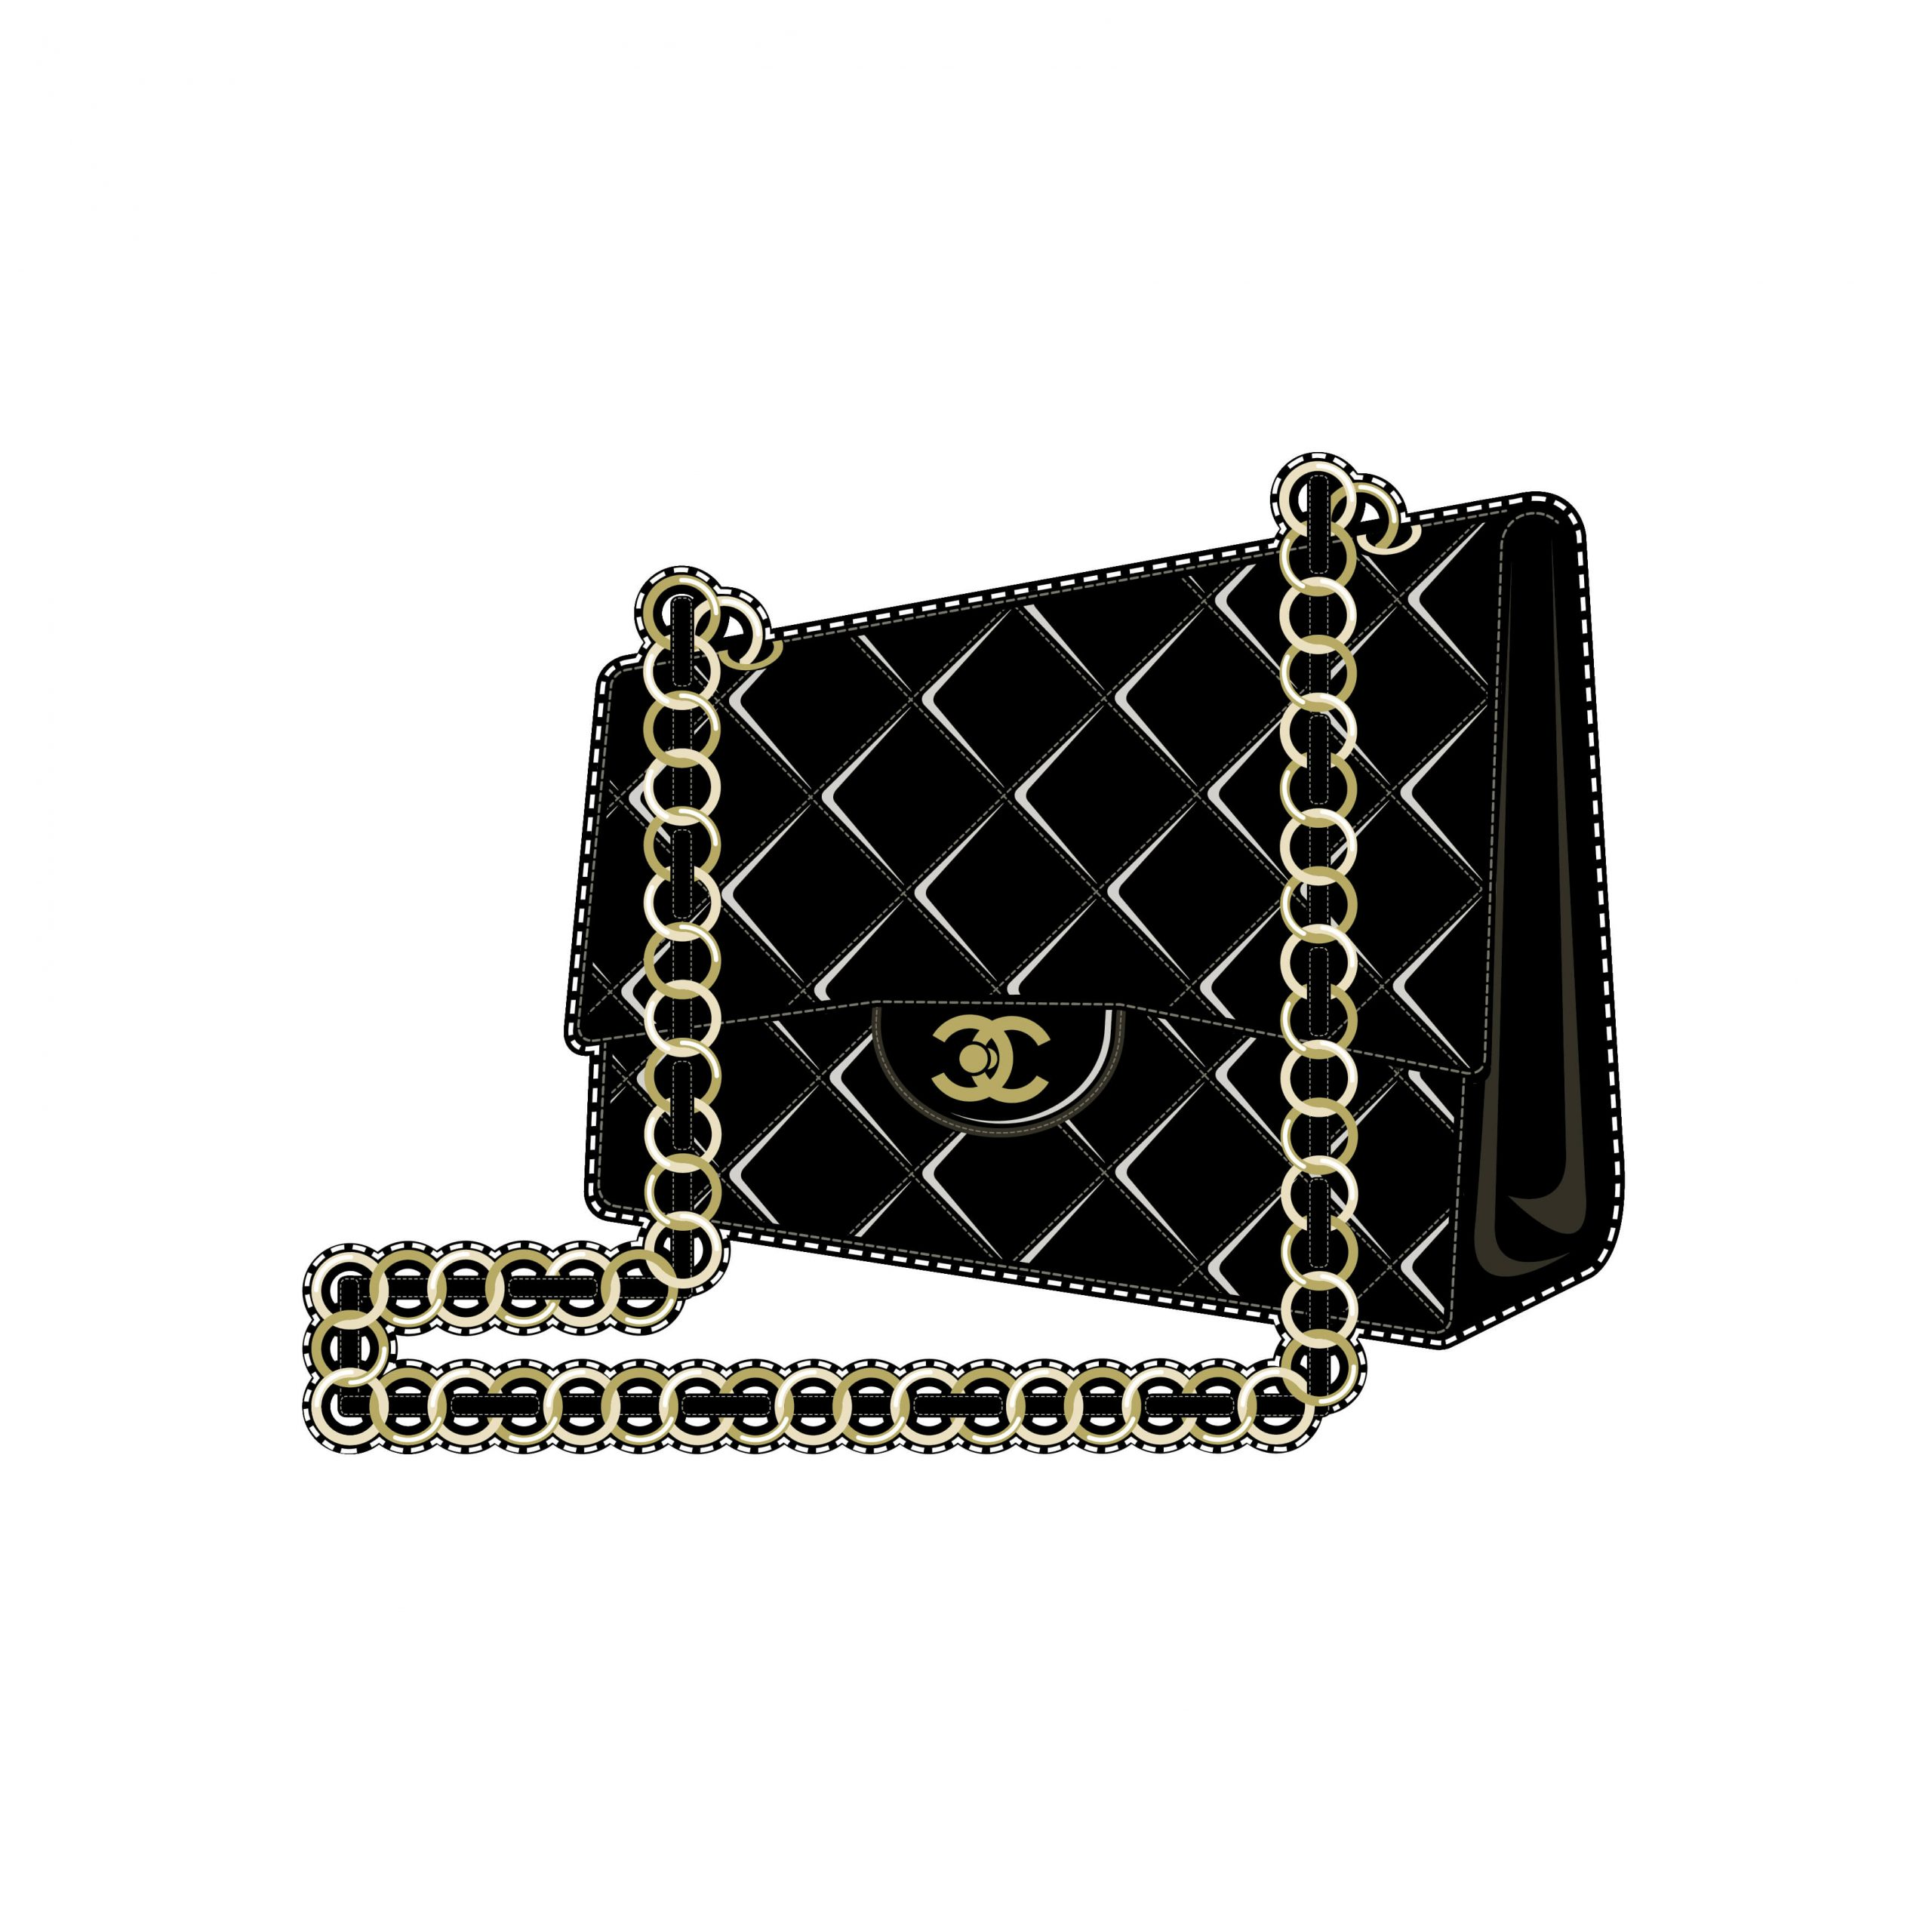 Black Bag by Blondy is Crazy